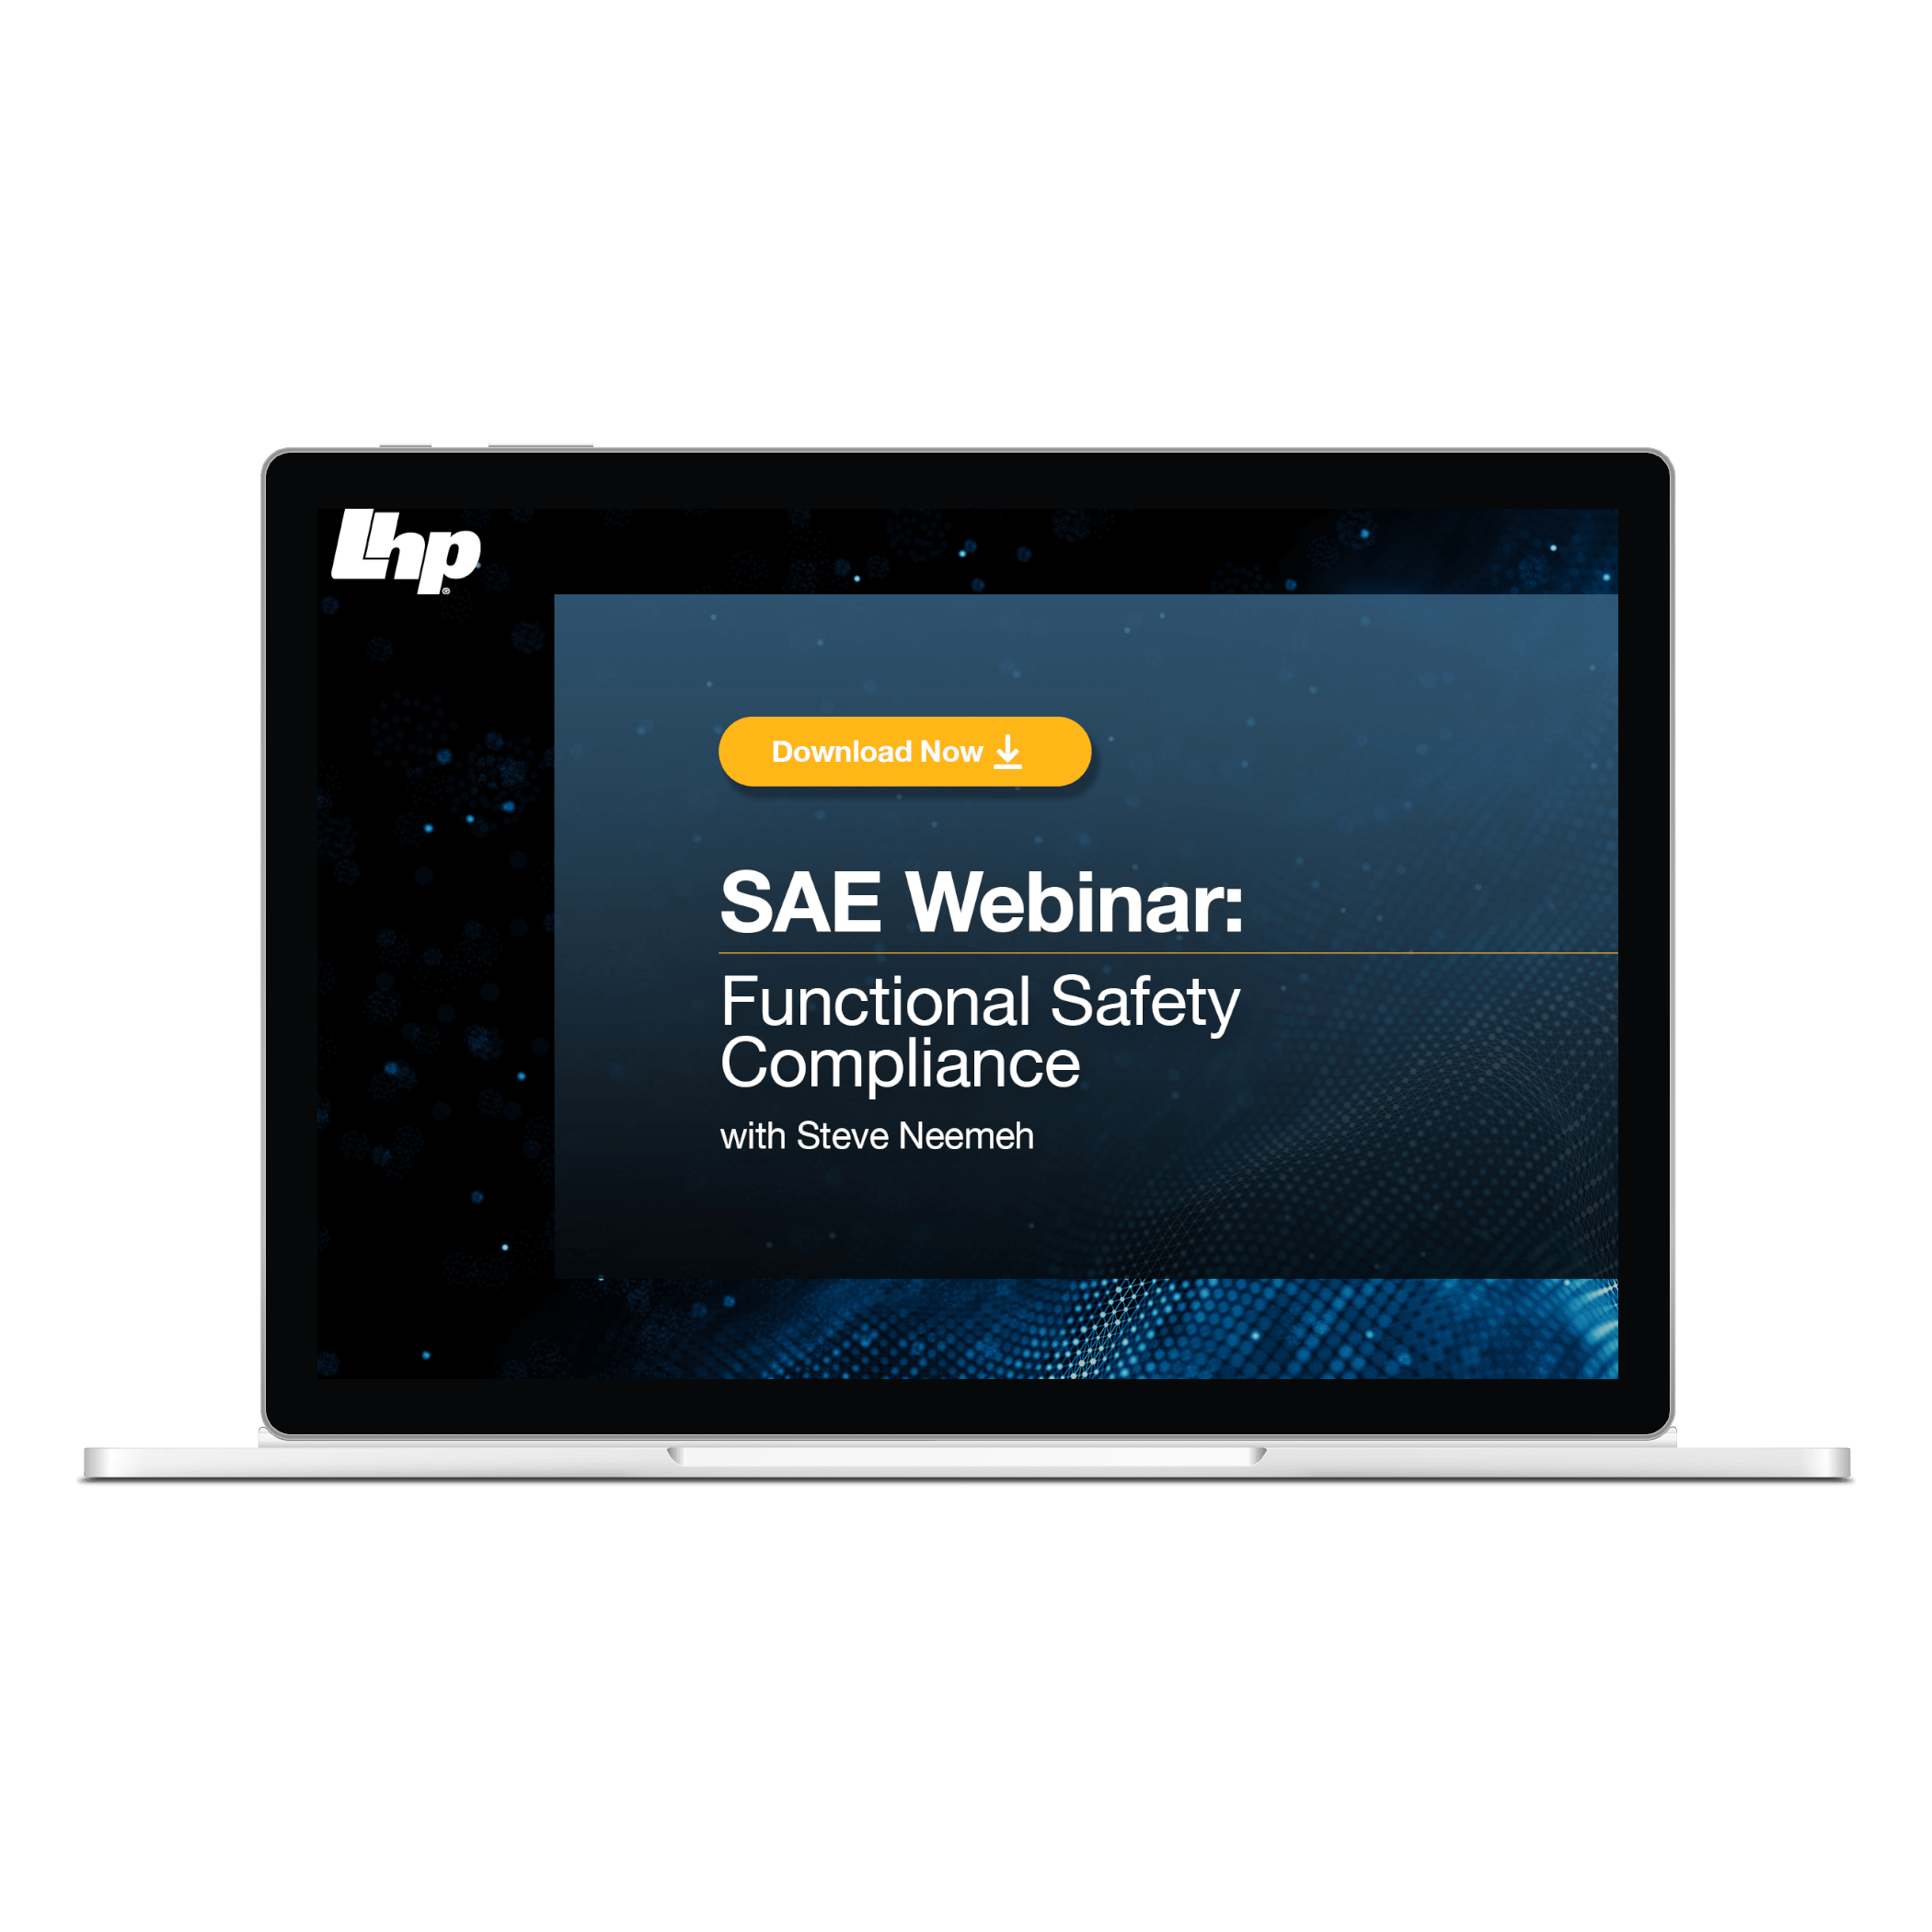 SAE Webinar: Functional Safety Compliance